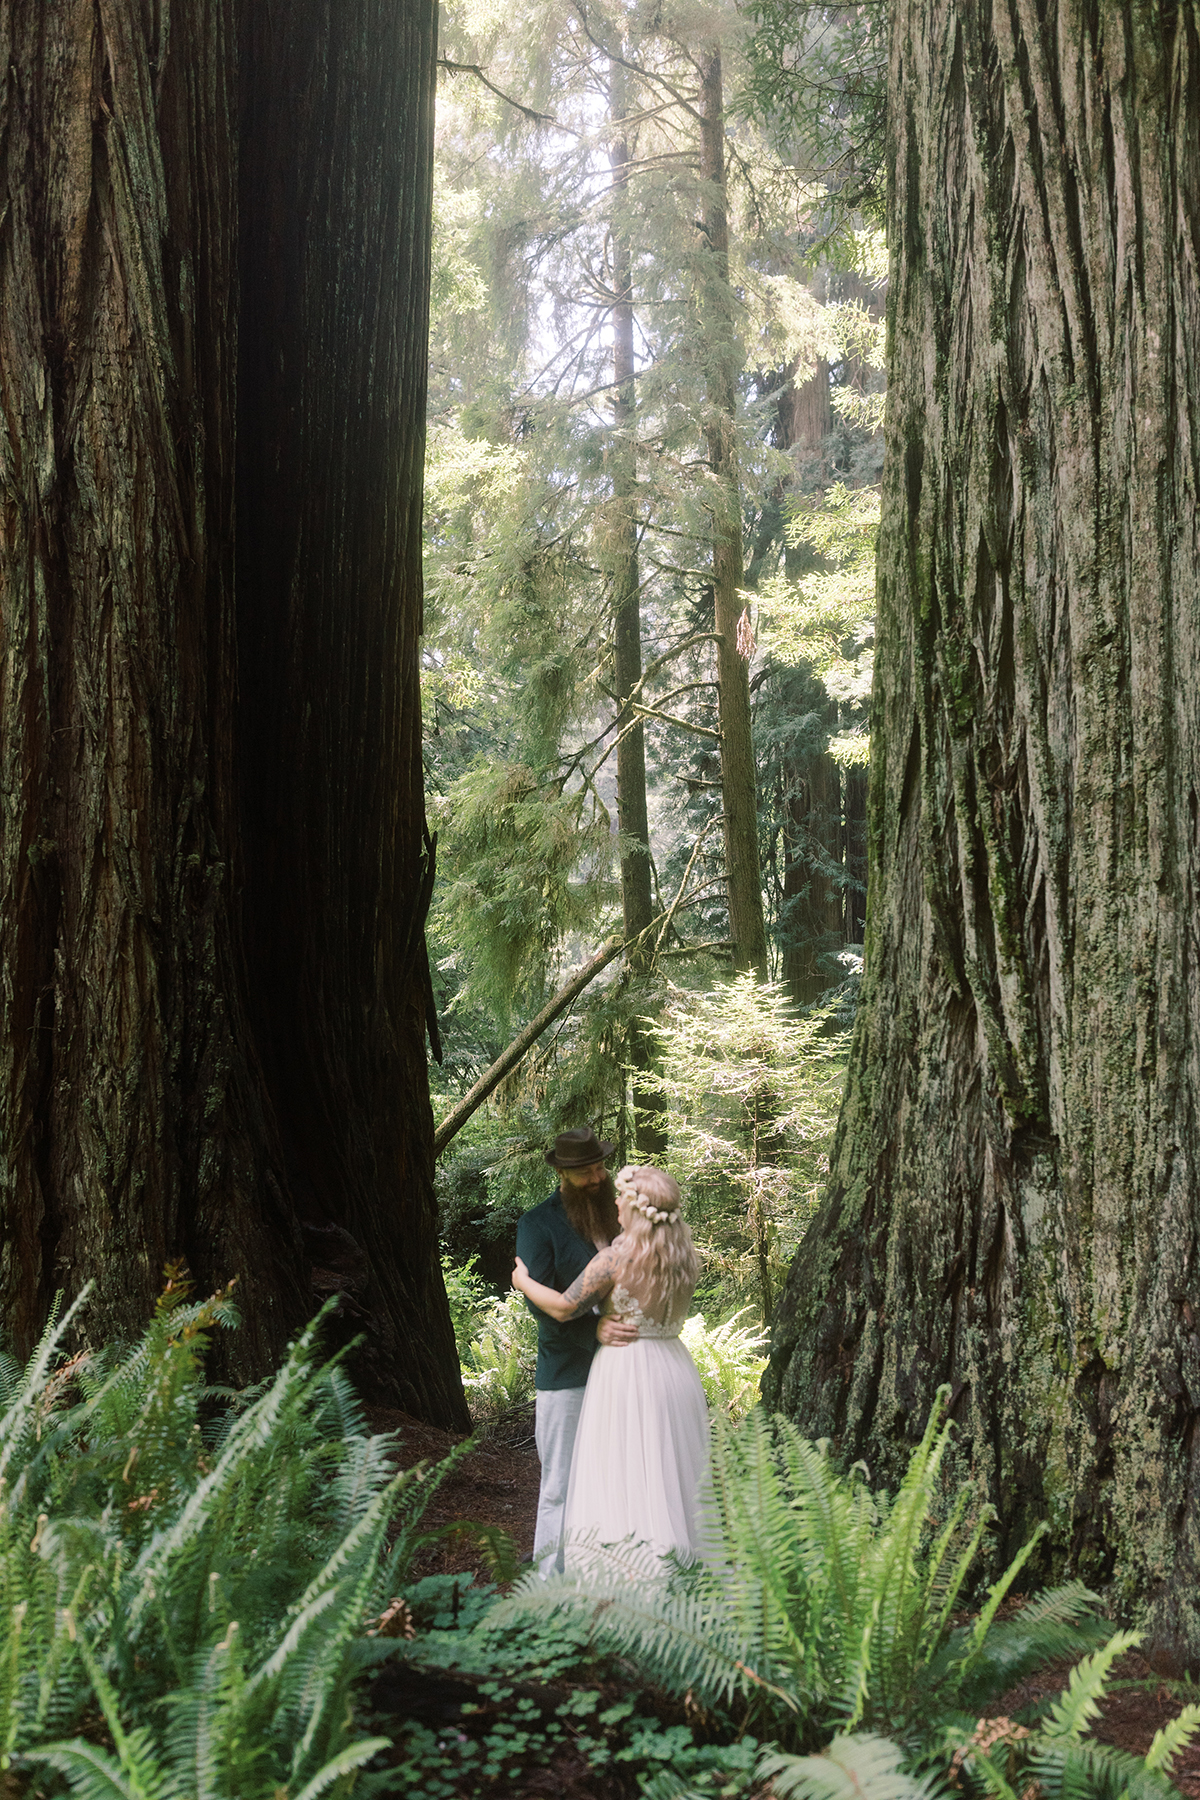 Prairie-Creek-Redwoods-State-Park-wedding-elopement-photos-02